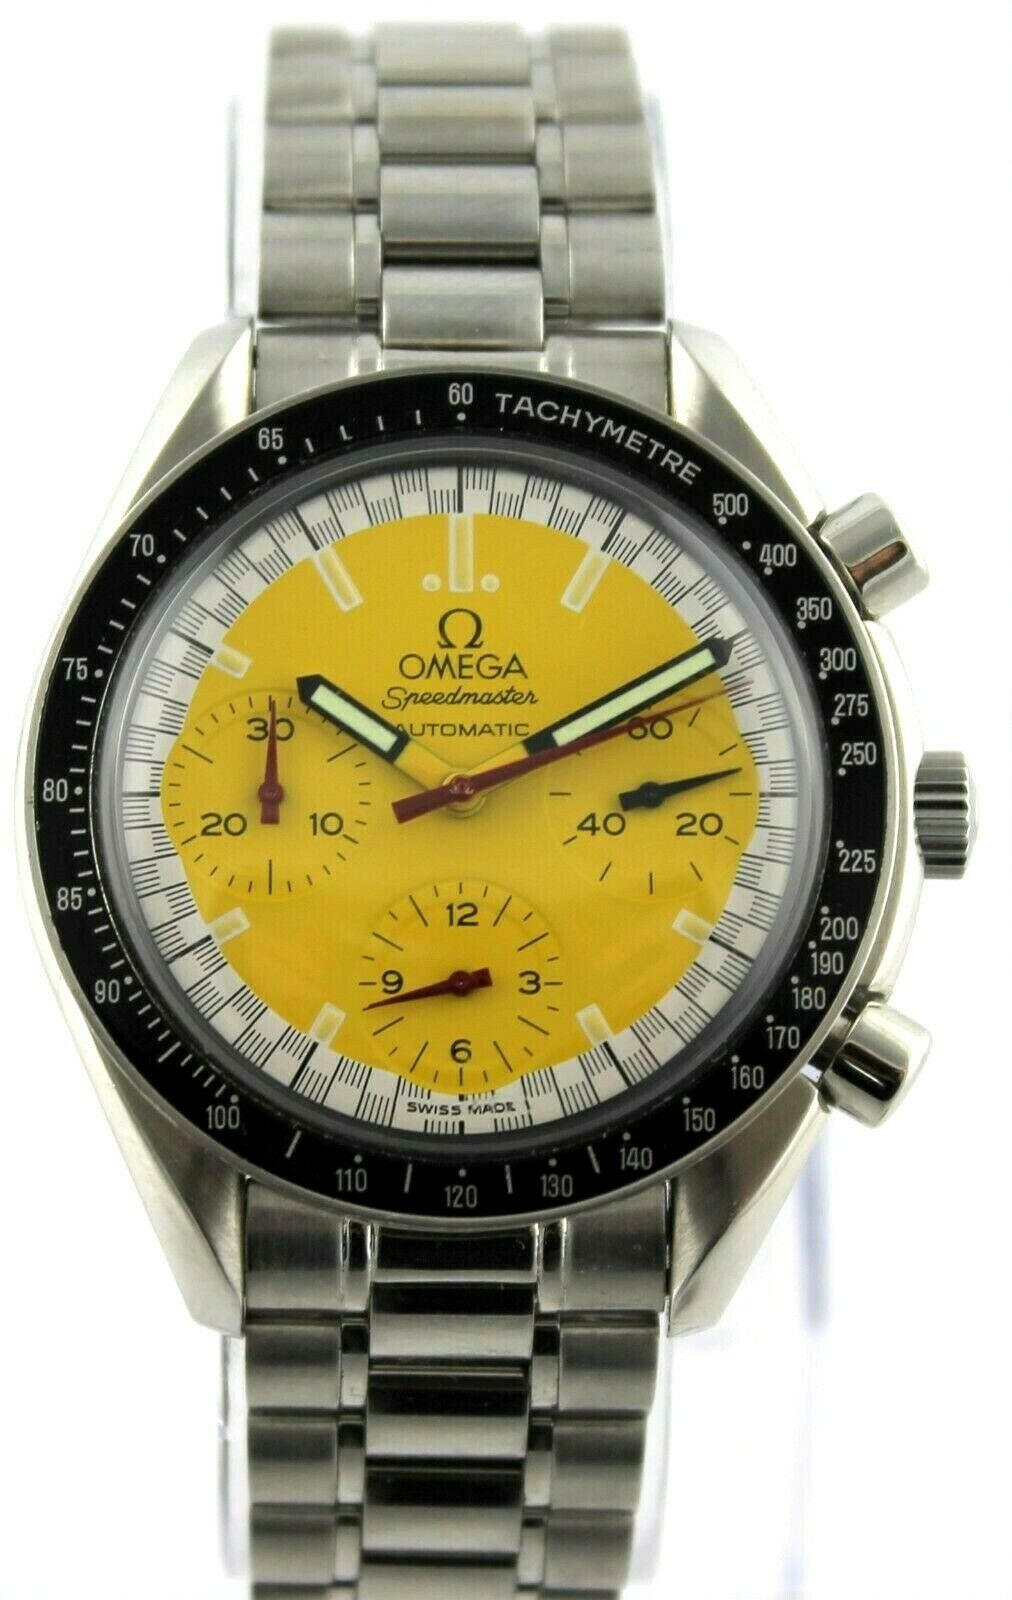 OMEGA SPEEDMASTER MICHAEL SCHUMACHER 3510.12 AUTOMATIC CHRONOGRAPH YELLOW WATCH